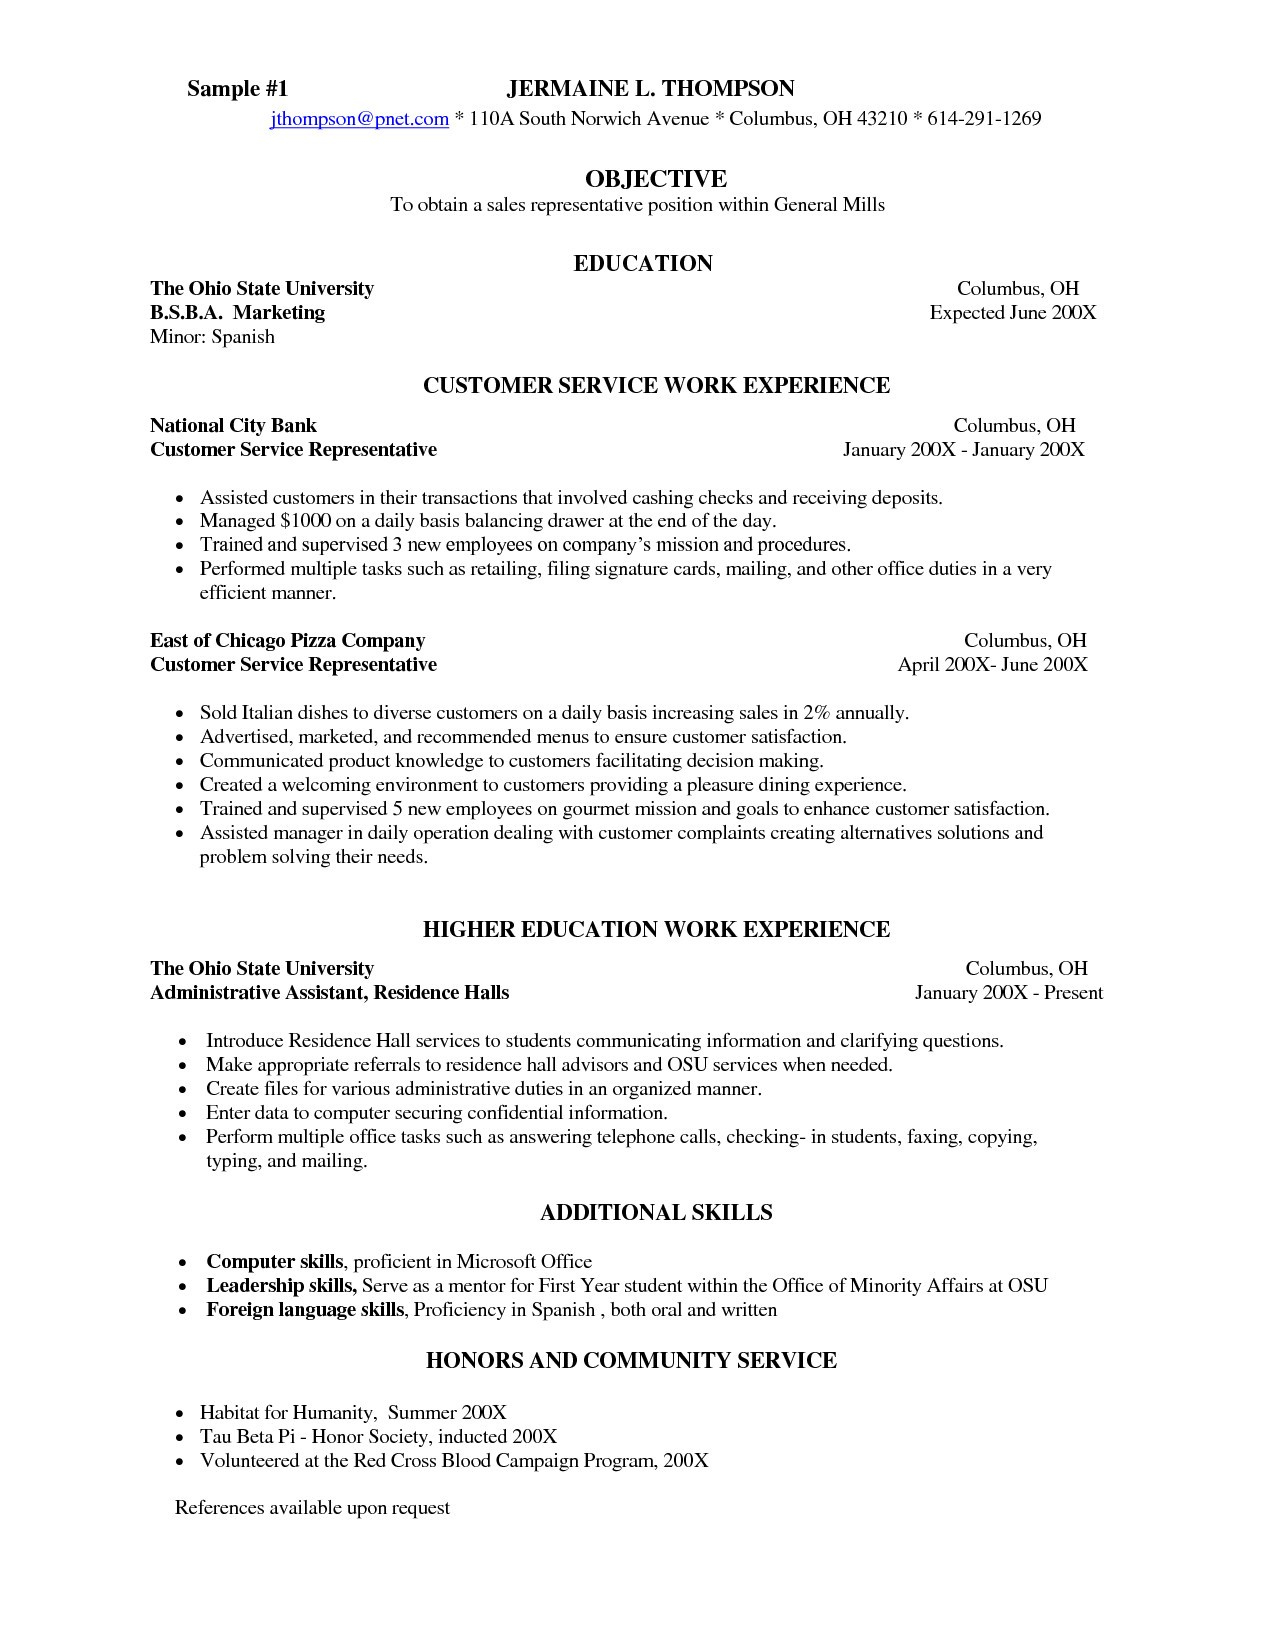 Waitress Resume Template - Server Resume Template Unique Catering Resume Samples Fresh Server